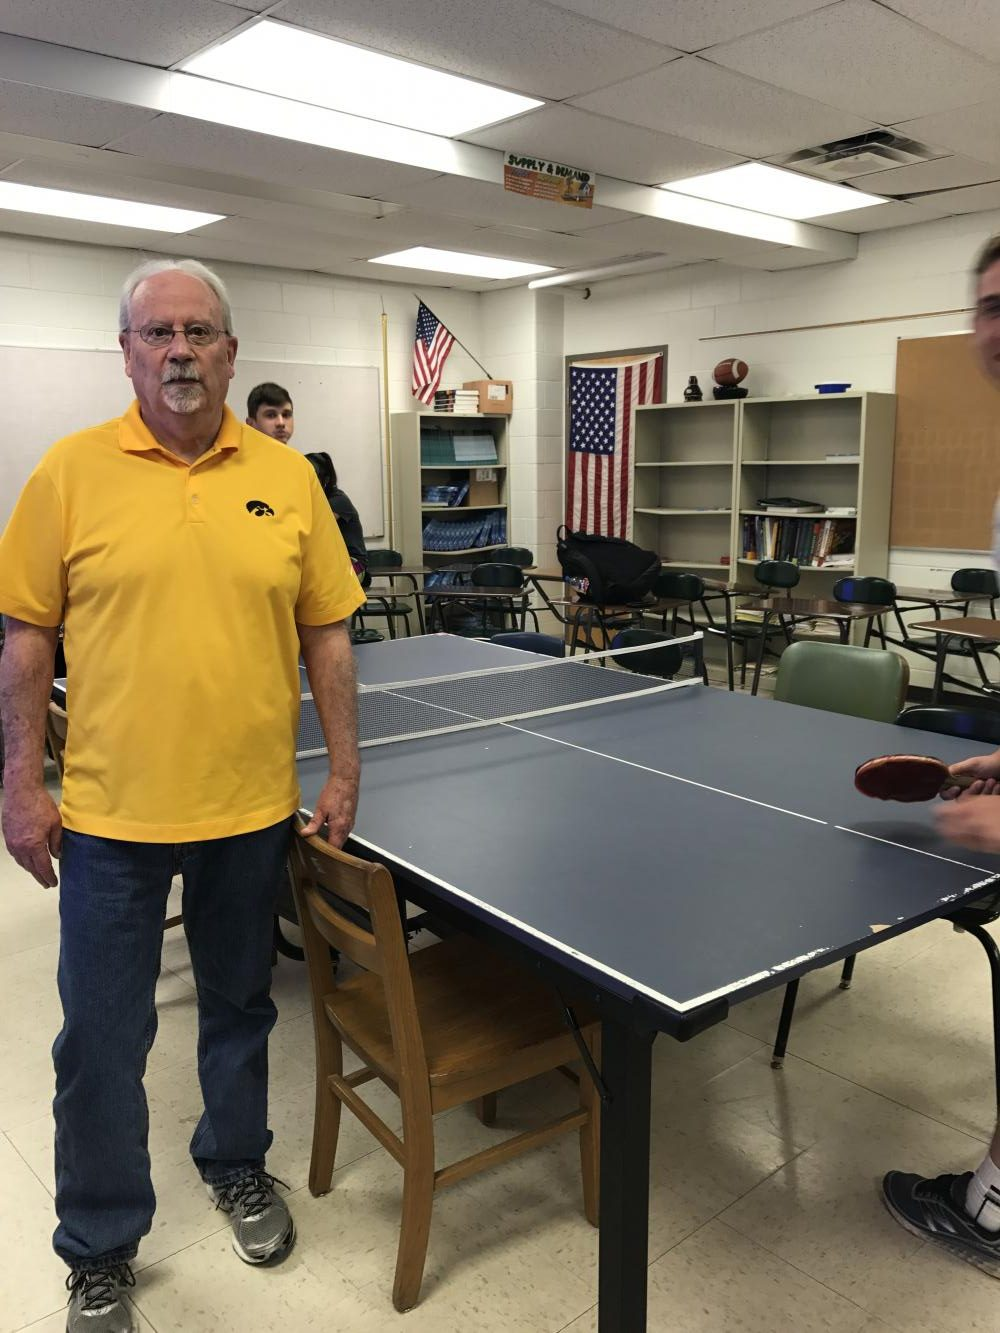 Pat Grady hanging out during Smart Time while students play ping pong in his room. Photo by Anna Reinhart.